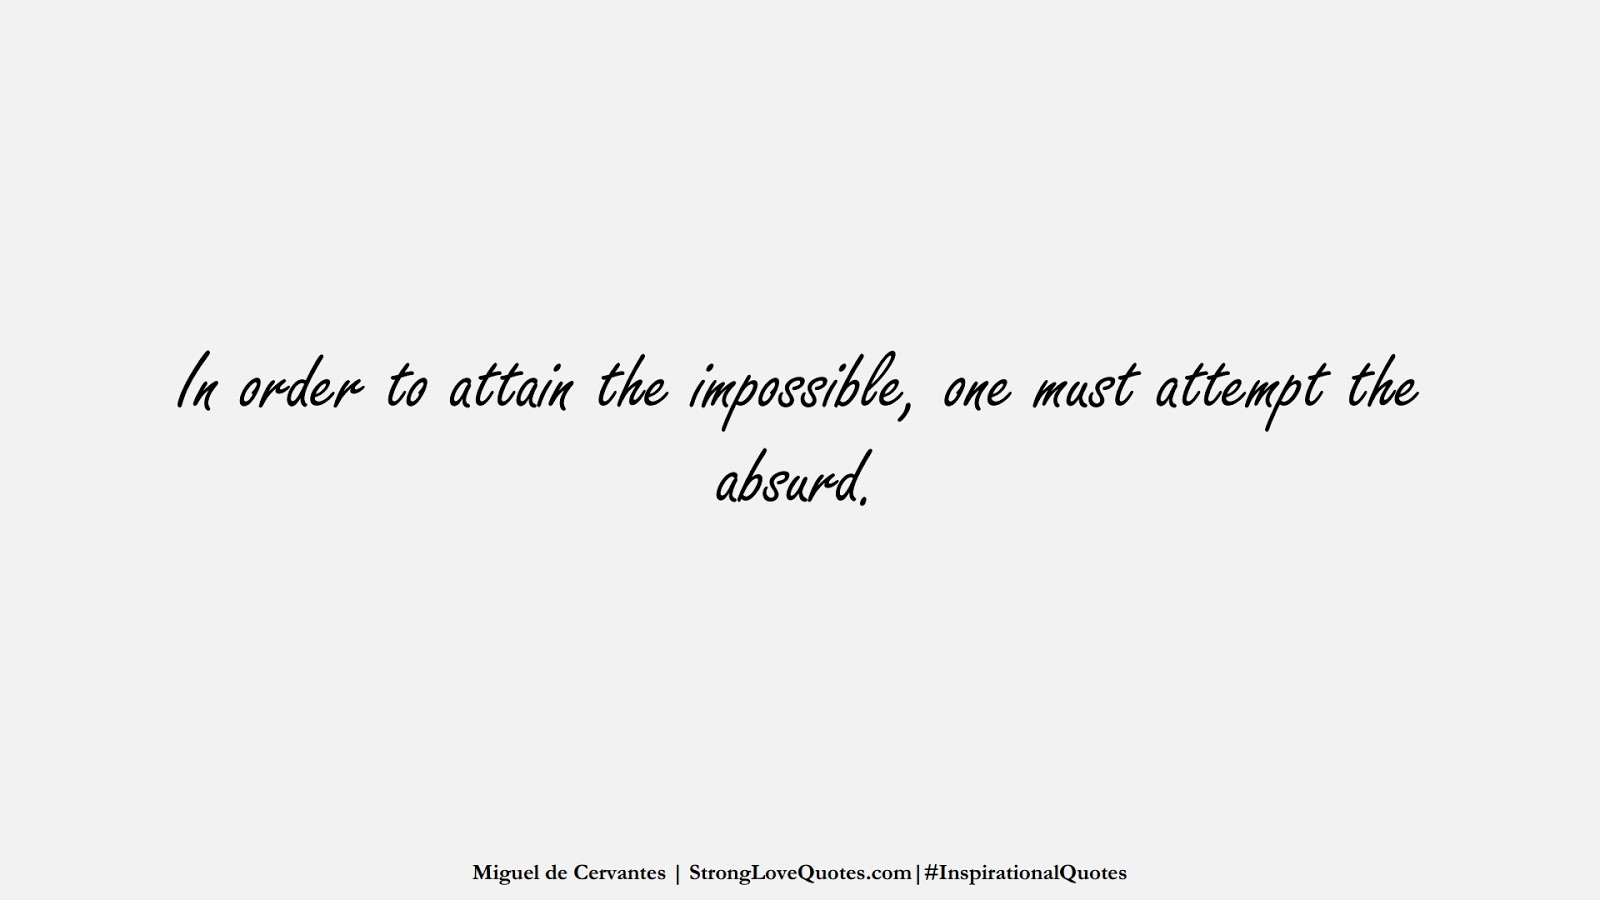 In order to attain the impossible, one must attempt the absurd. (Miguel de Cervantes);  #InspirationalQuotes